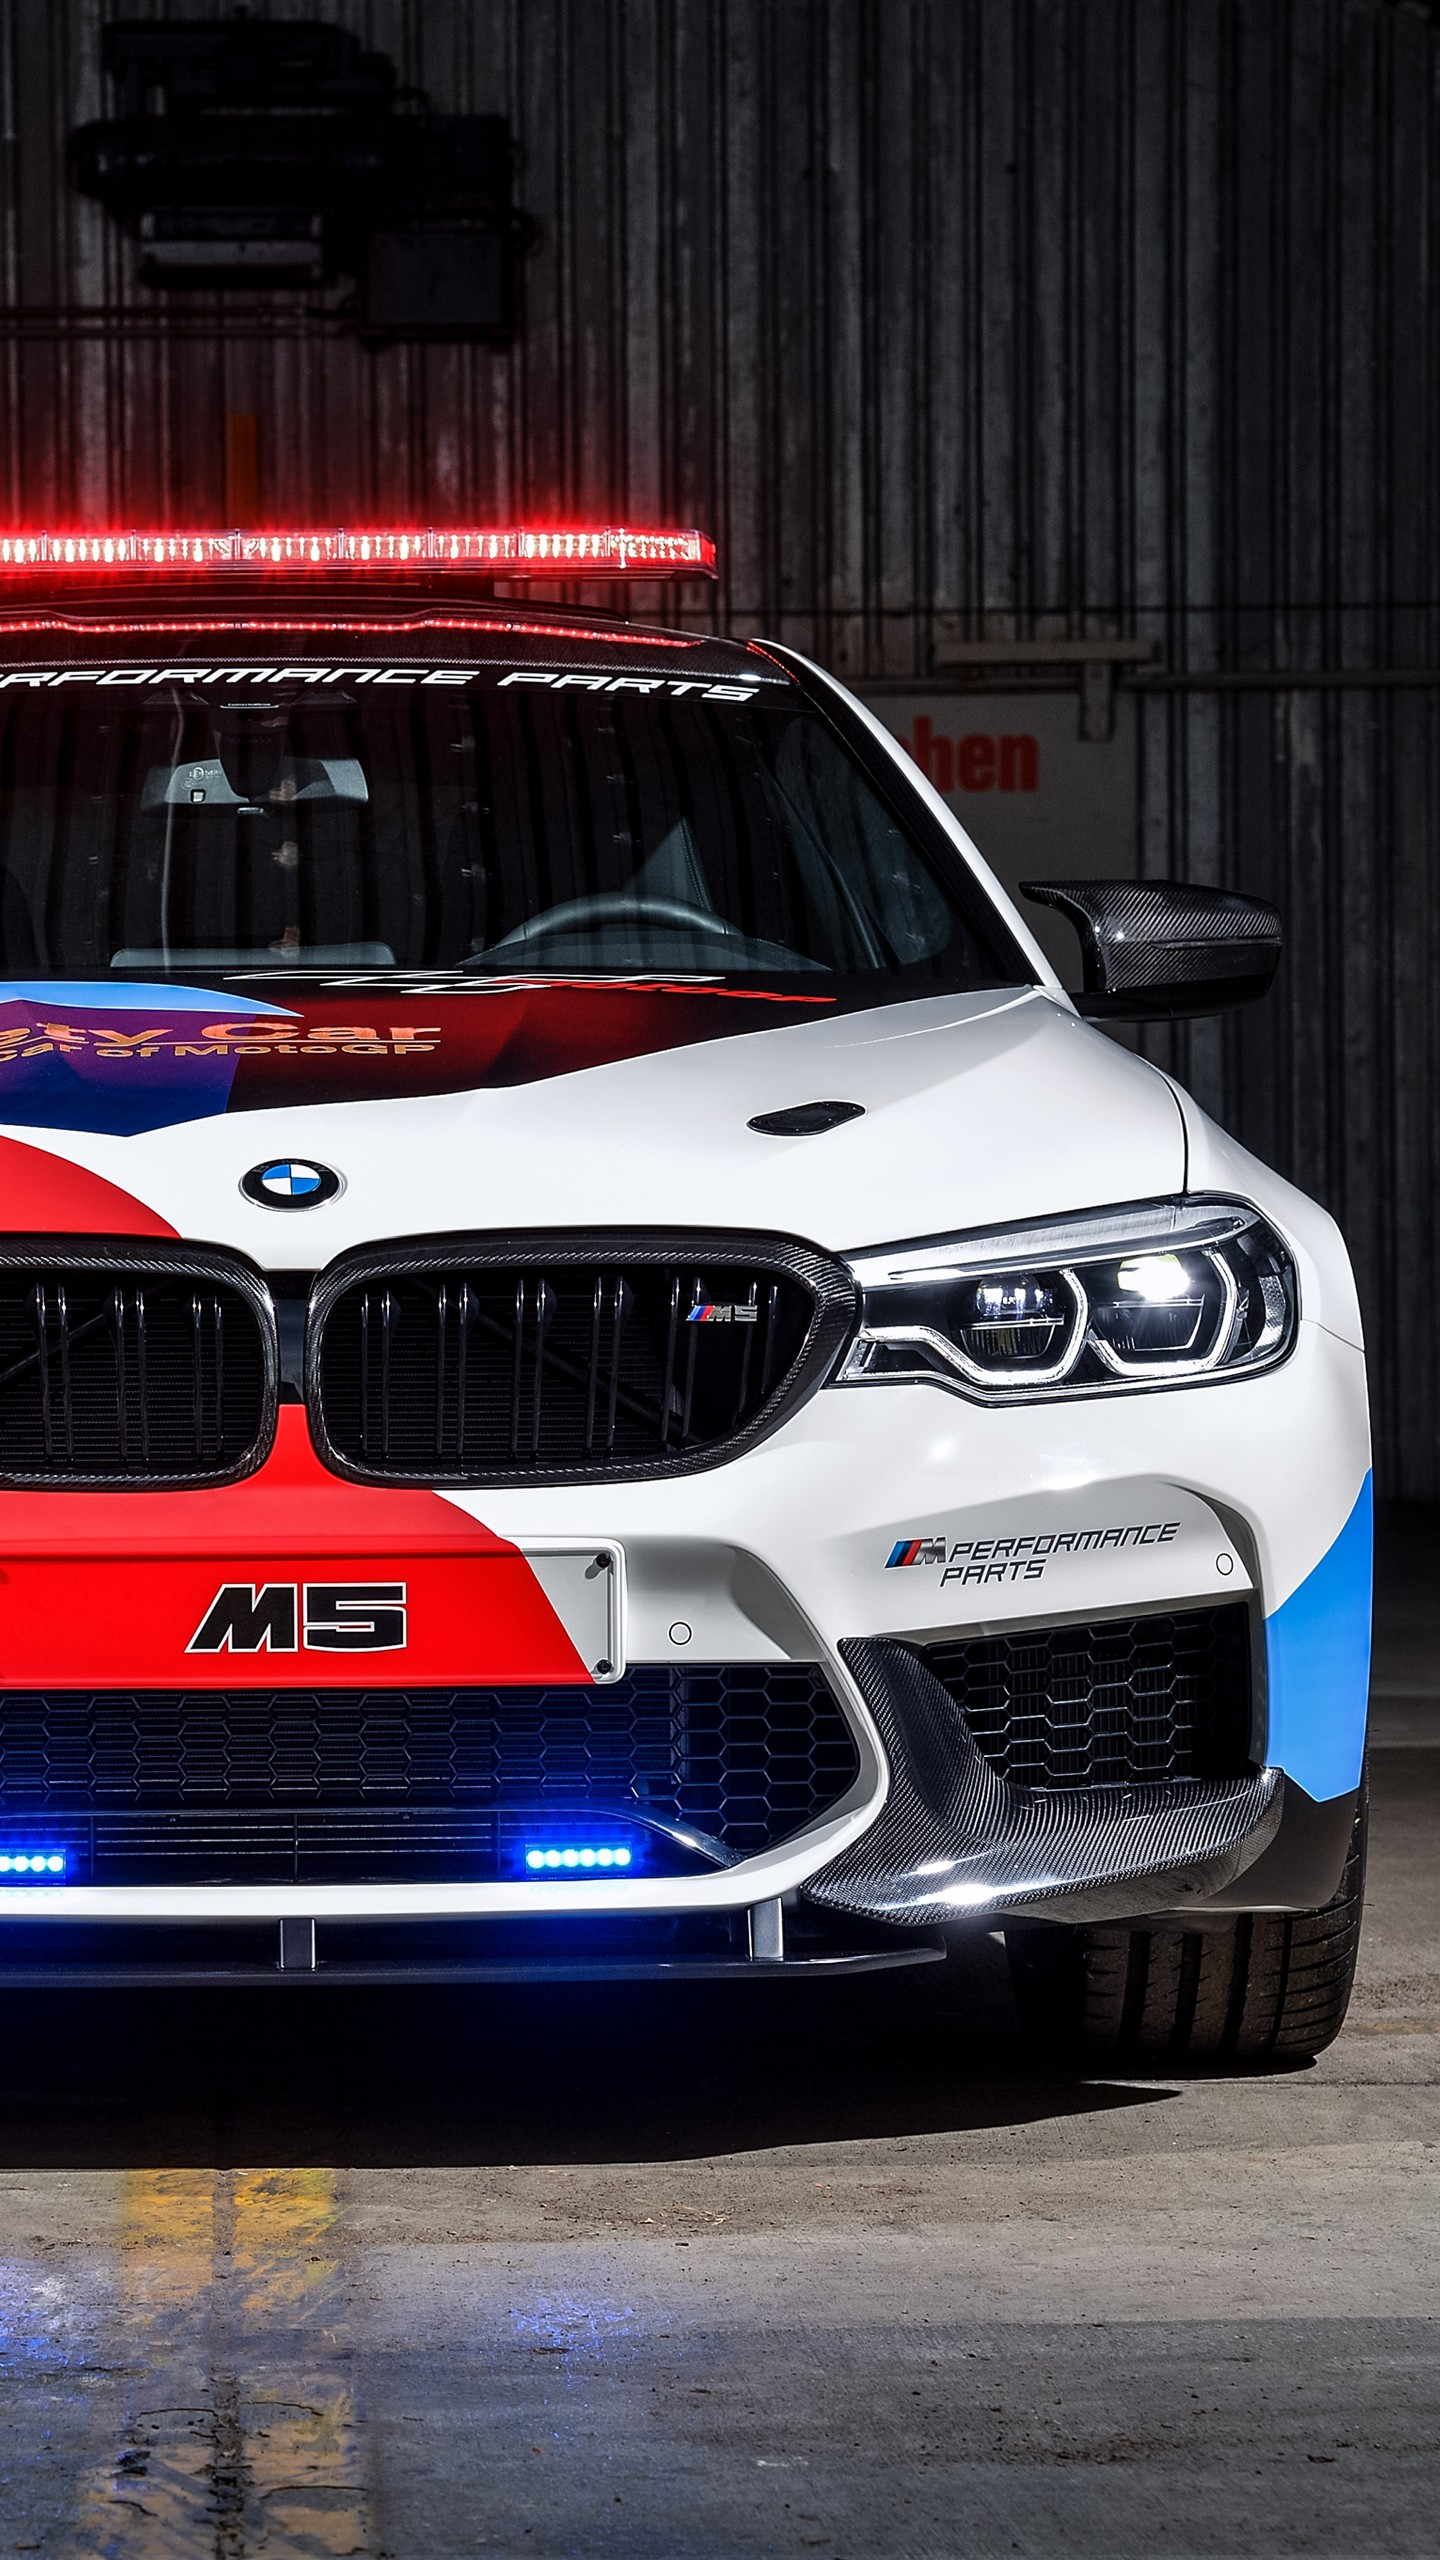 Full Hd Car Wallpapers For Android 2018 Bmw M5 Motogp Safety Car 4k Wallpapers Hd